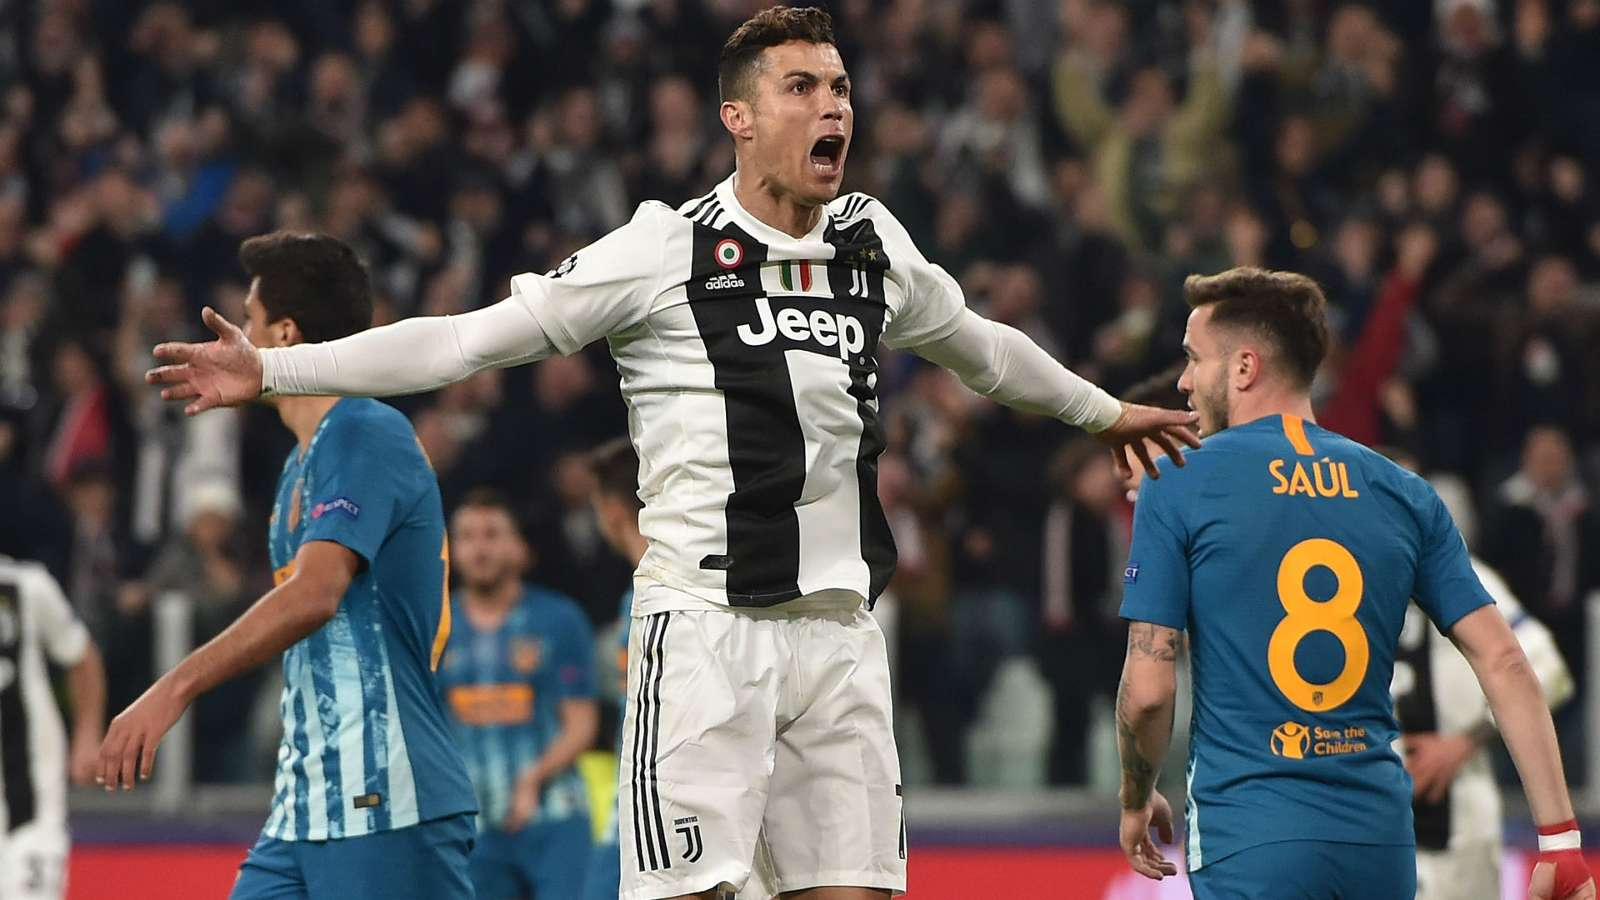 Photo of Juventus vs Atletico Madrid 3-0: UEFA Champions League Match Report & Highlights [Video]